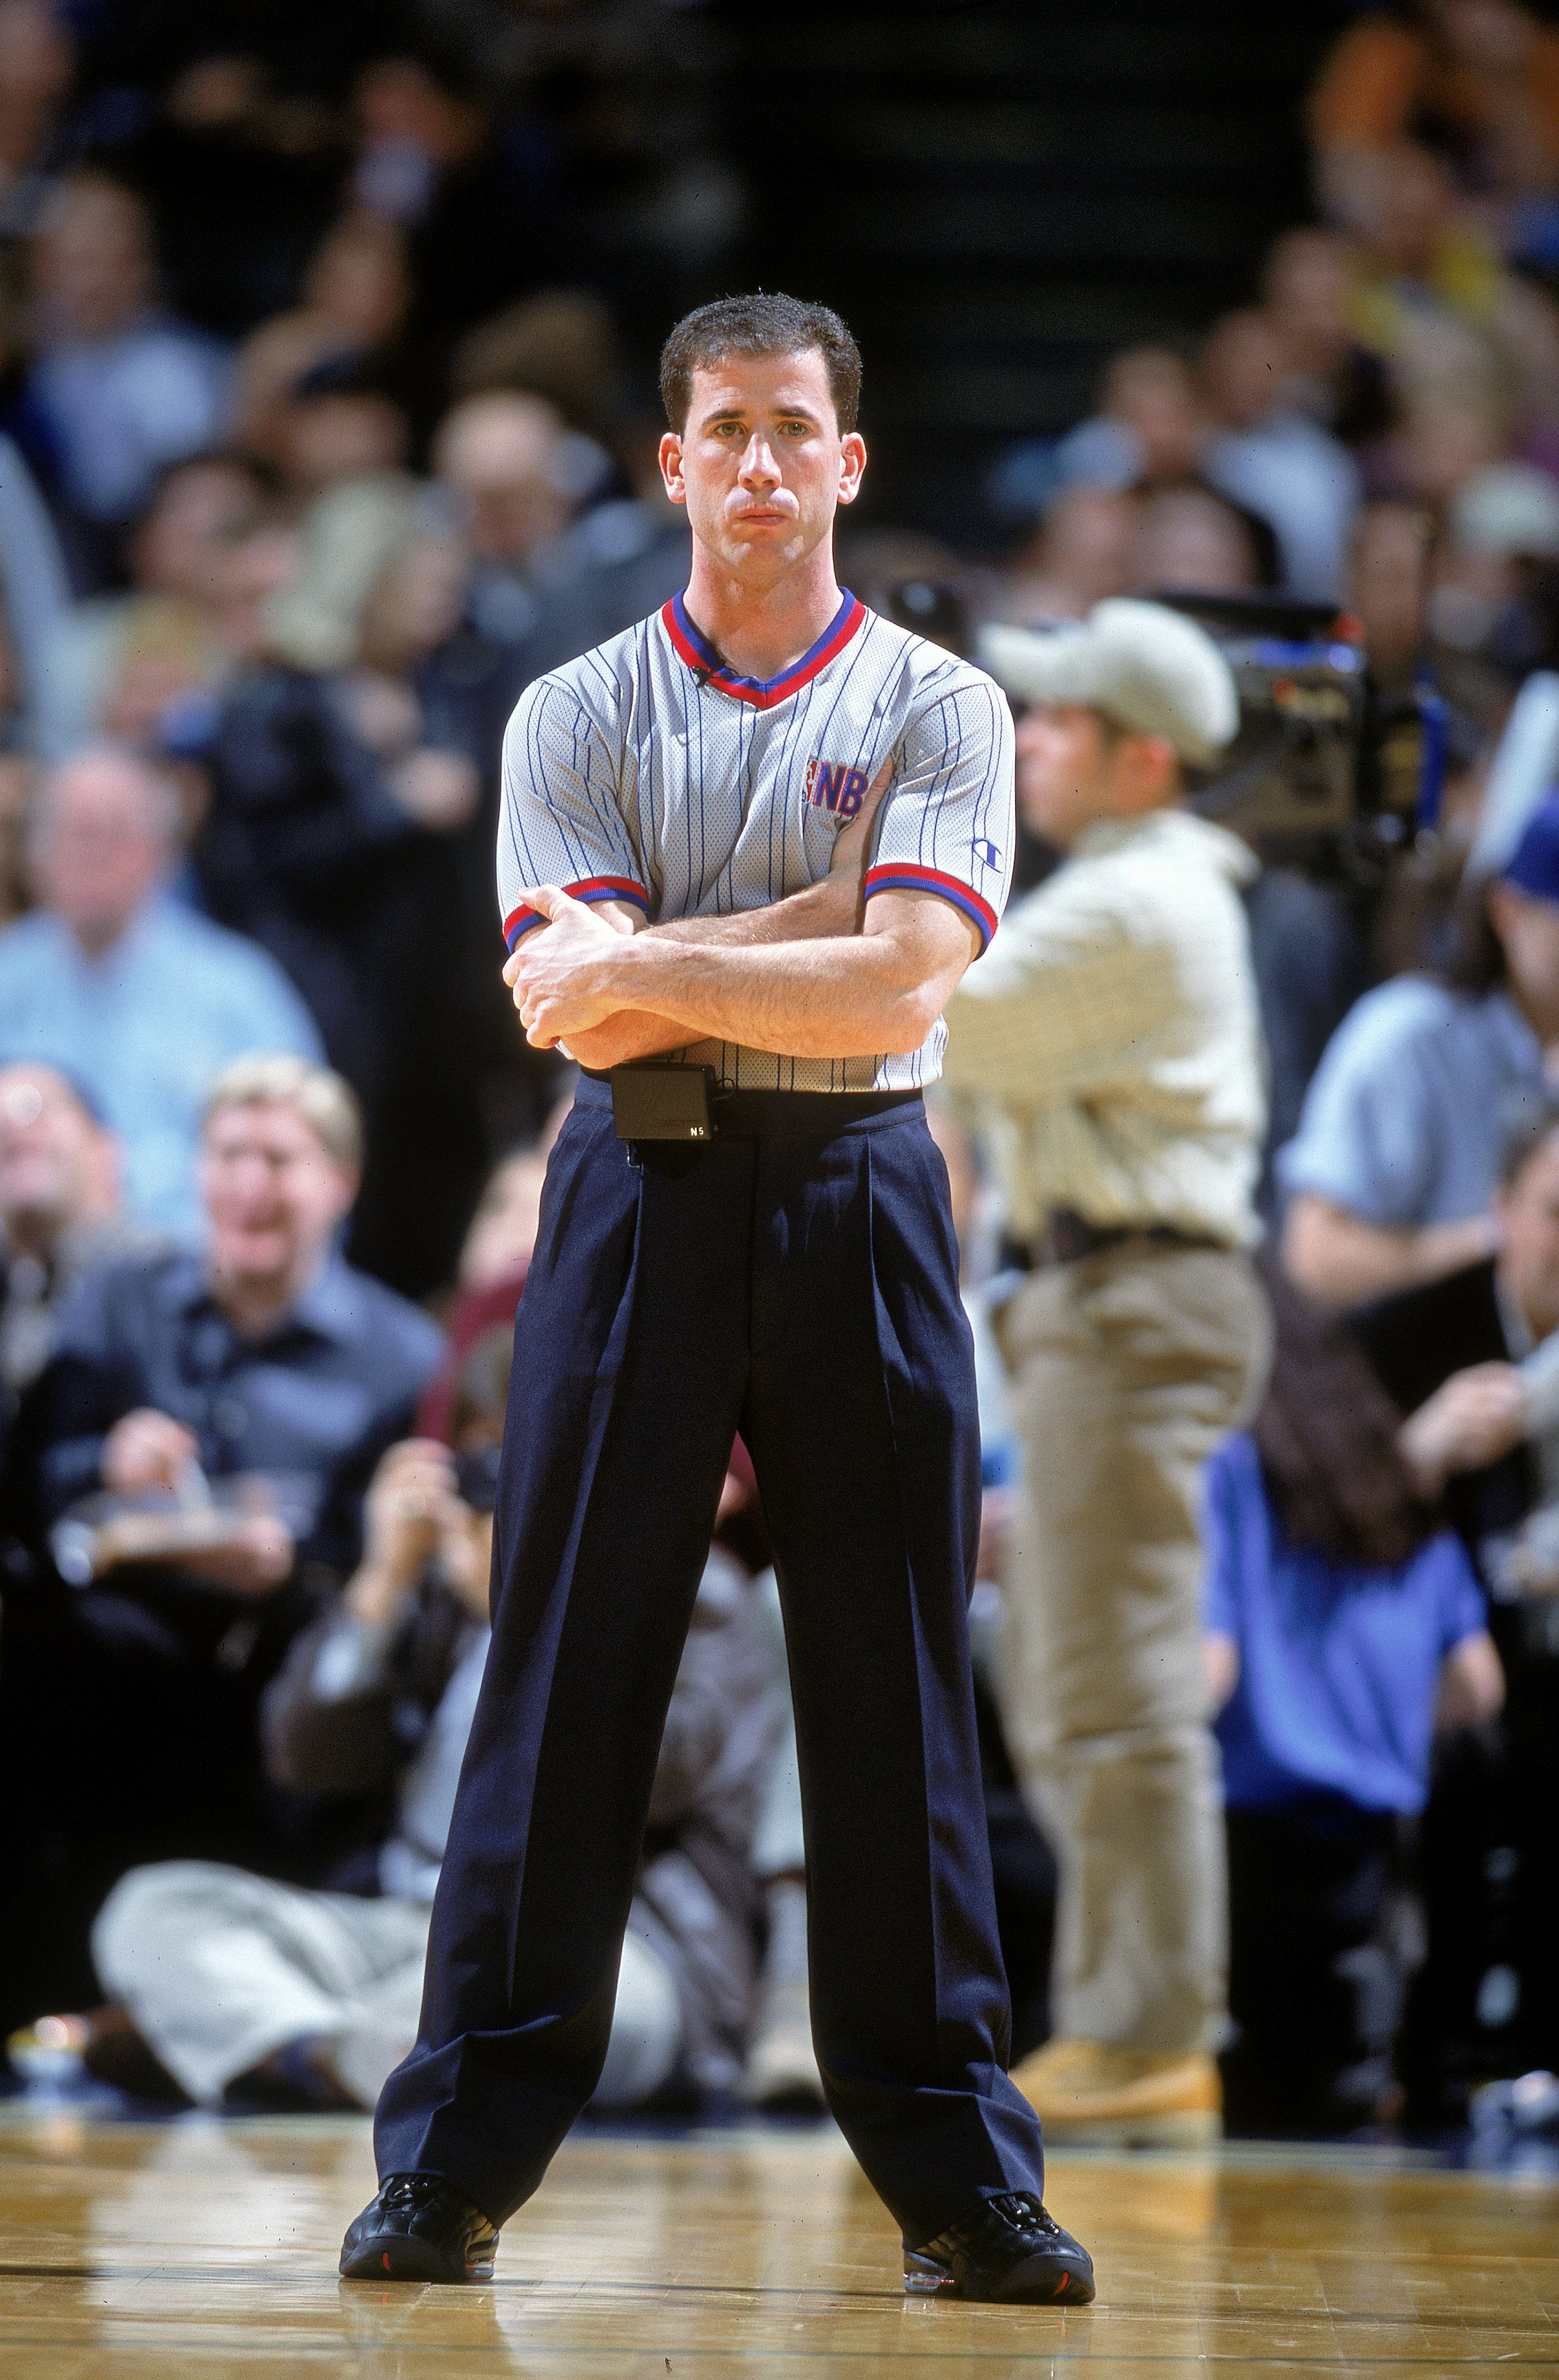 6 Dec 2000:  Referee Tim Donaghy  stands on the court during the game between the New York Knicks and the Dallas Mavericks at the Reunion Arena in Dallas, Texas. The Mavericks defeated the Knicks 94-85.   NOTE TO USER: It is expressly understood that the